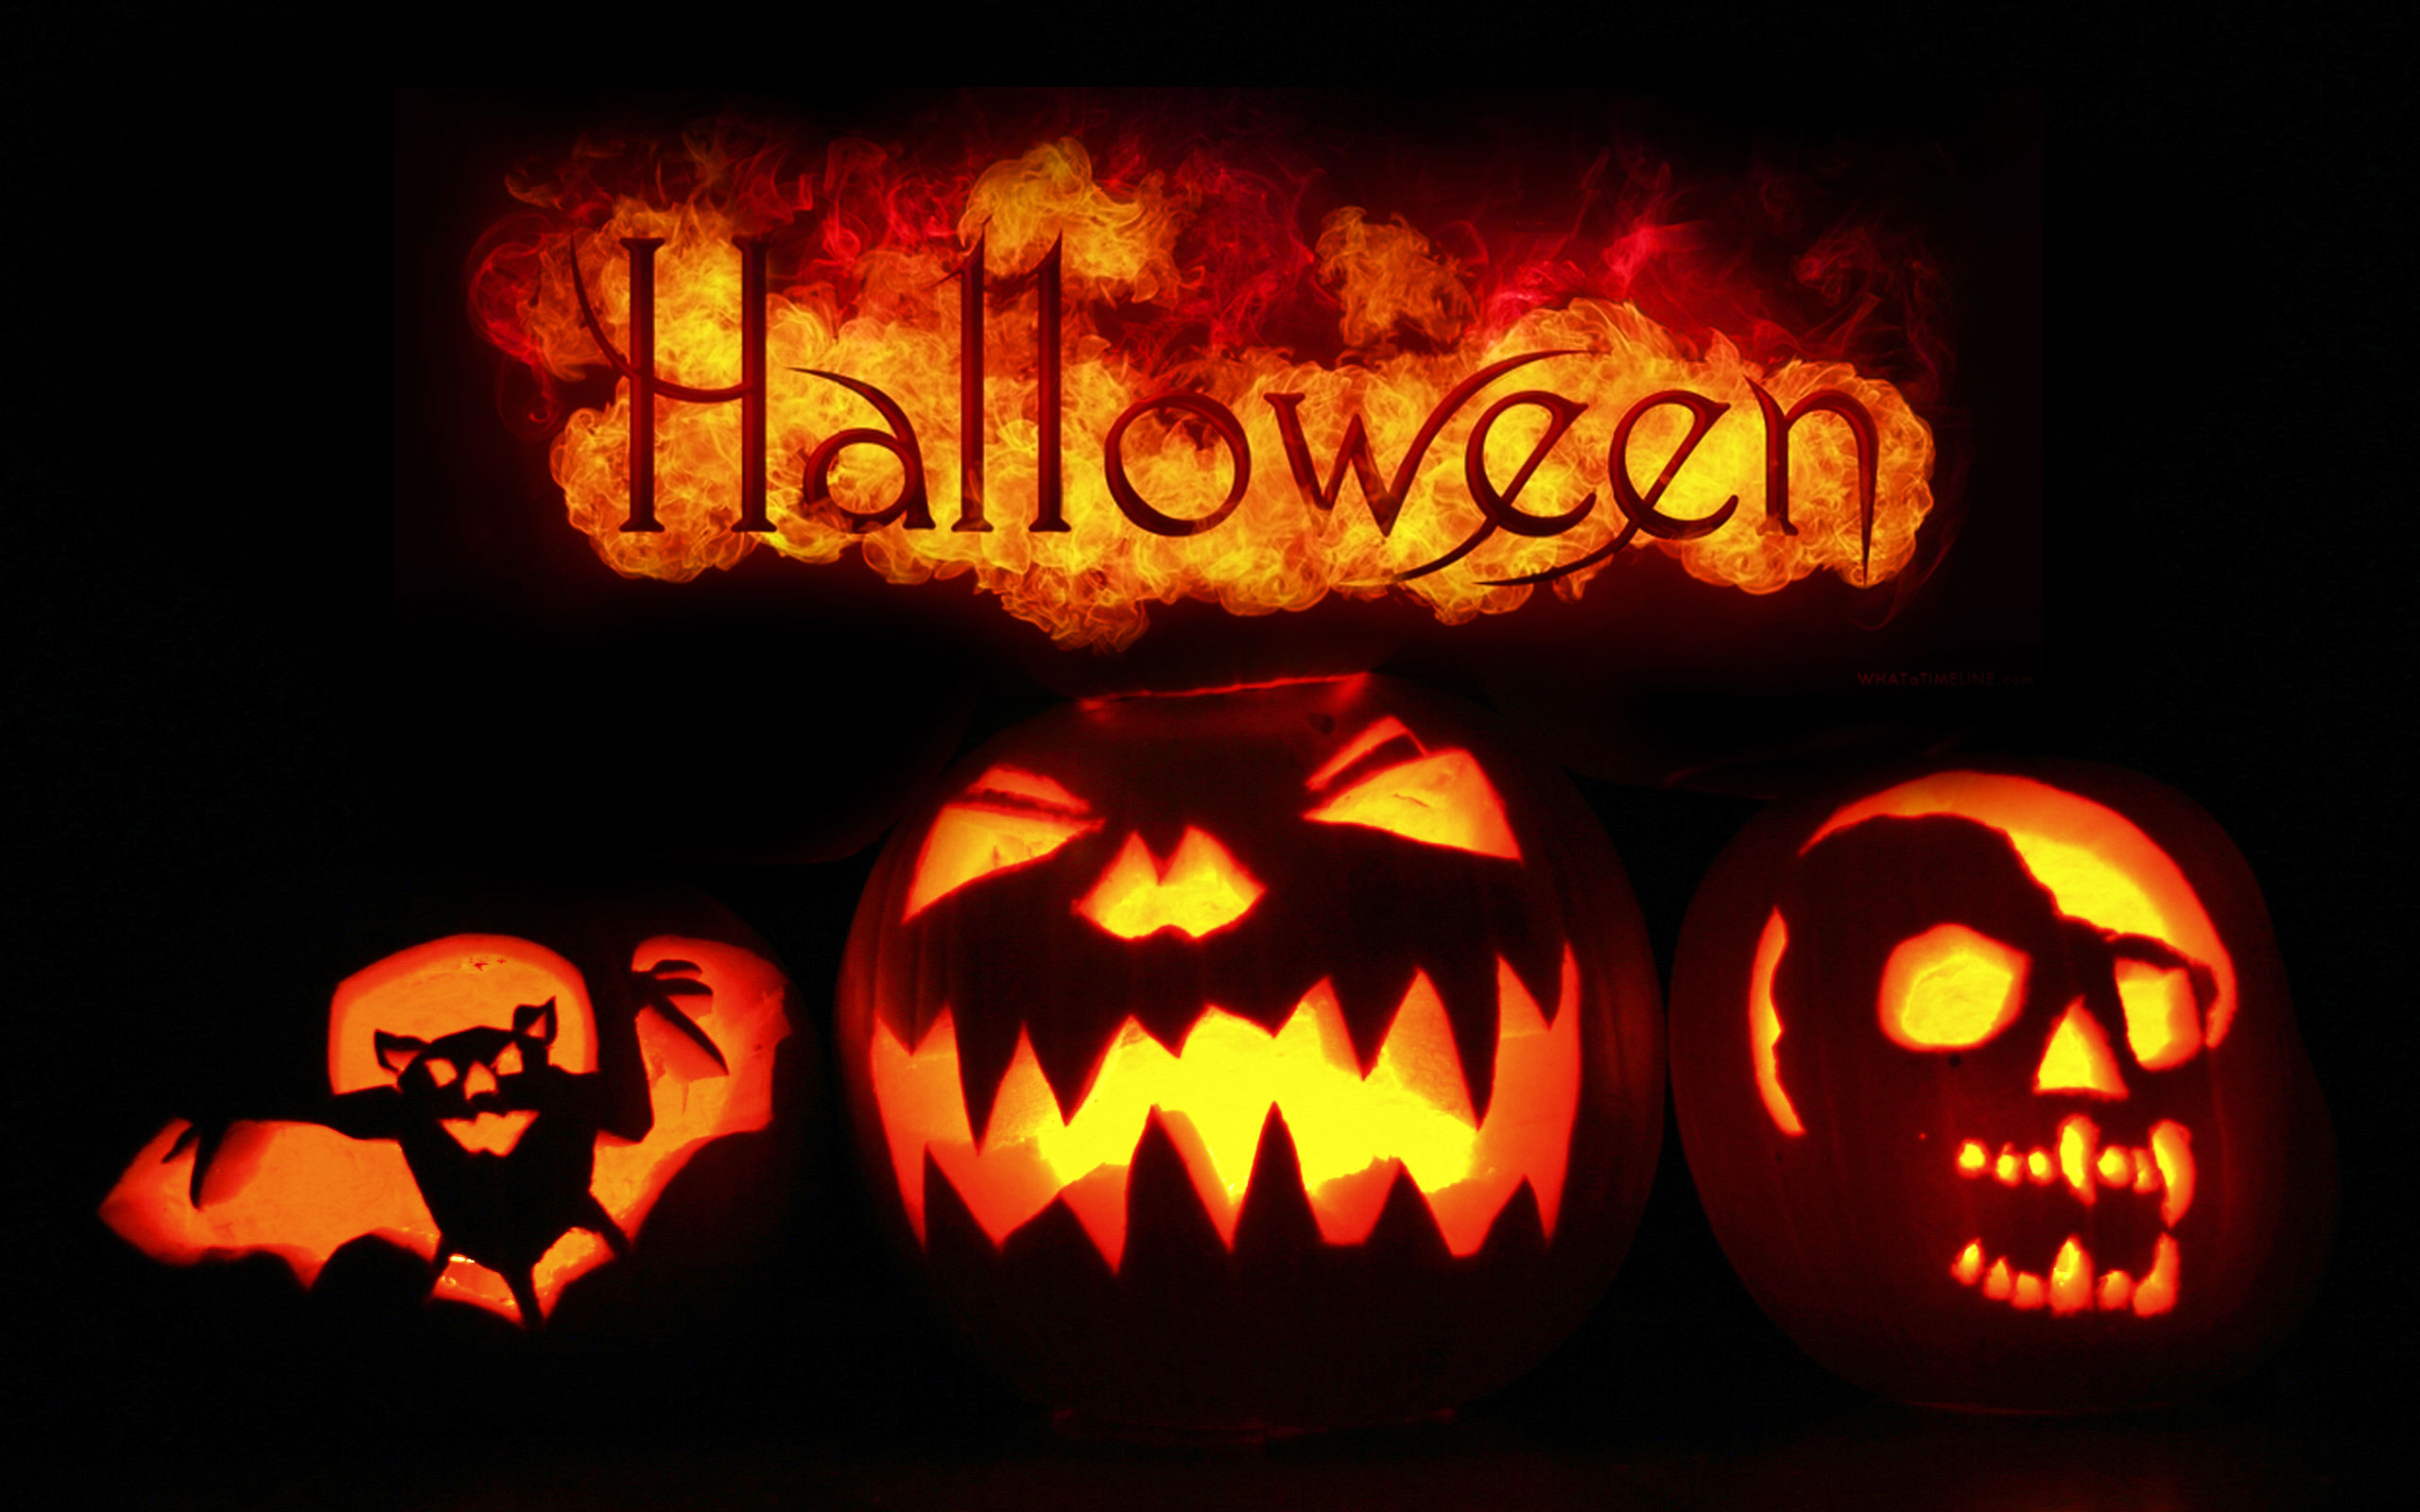 Scary Happy Halloween 2015 Images Backgrounds Wallpapers Ideas 2560x1600